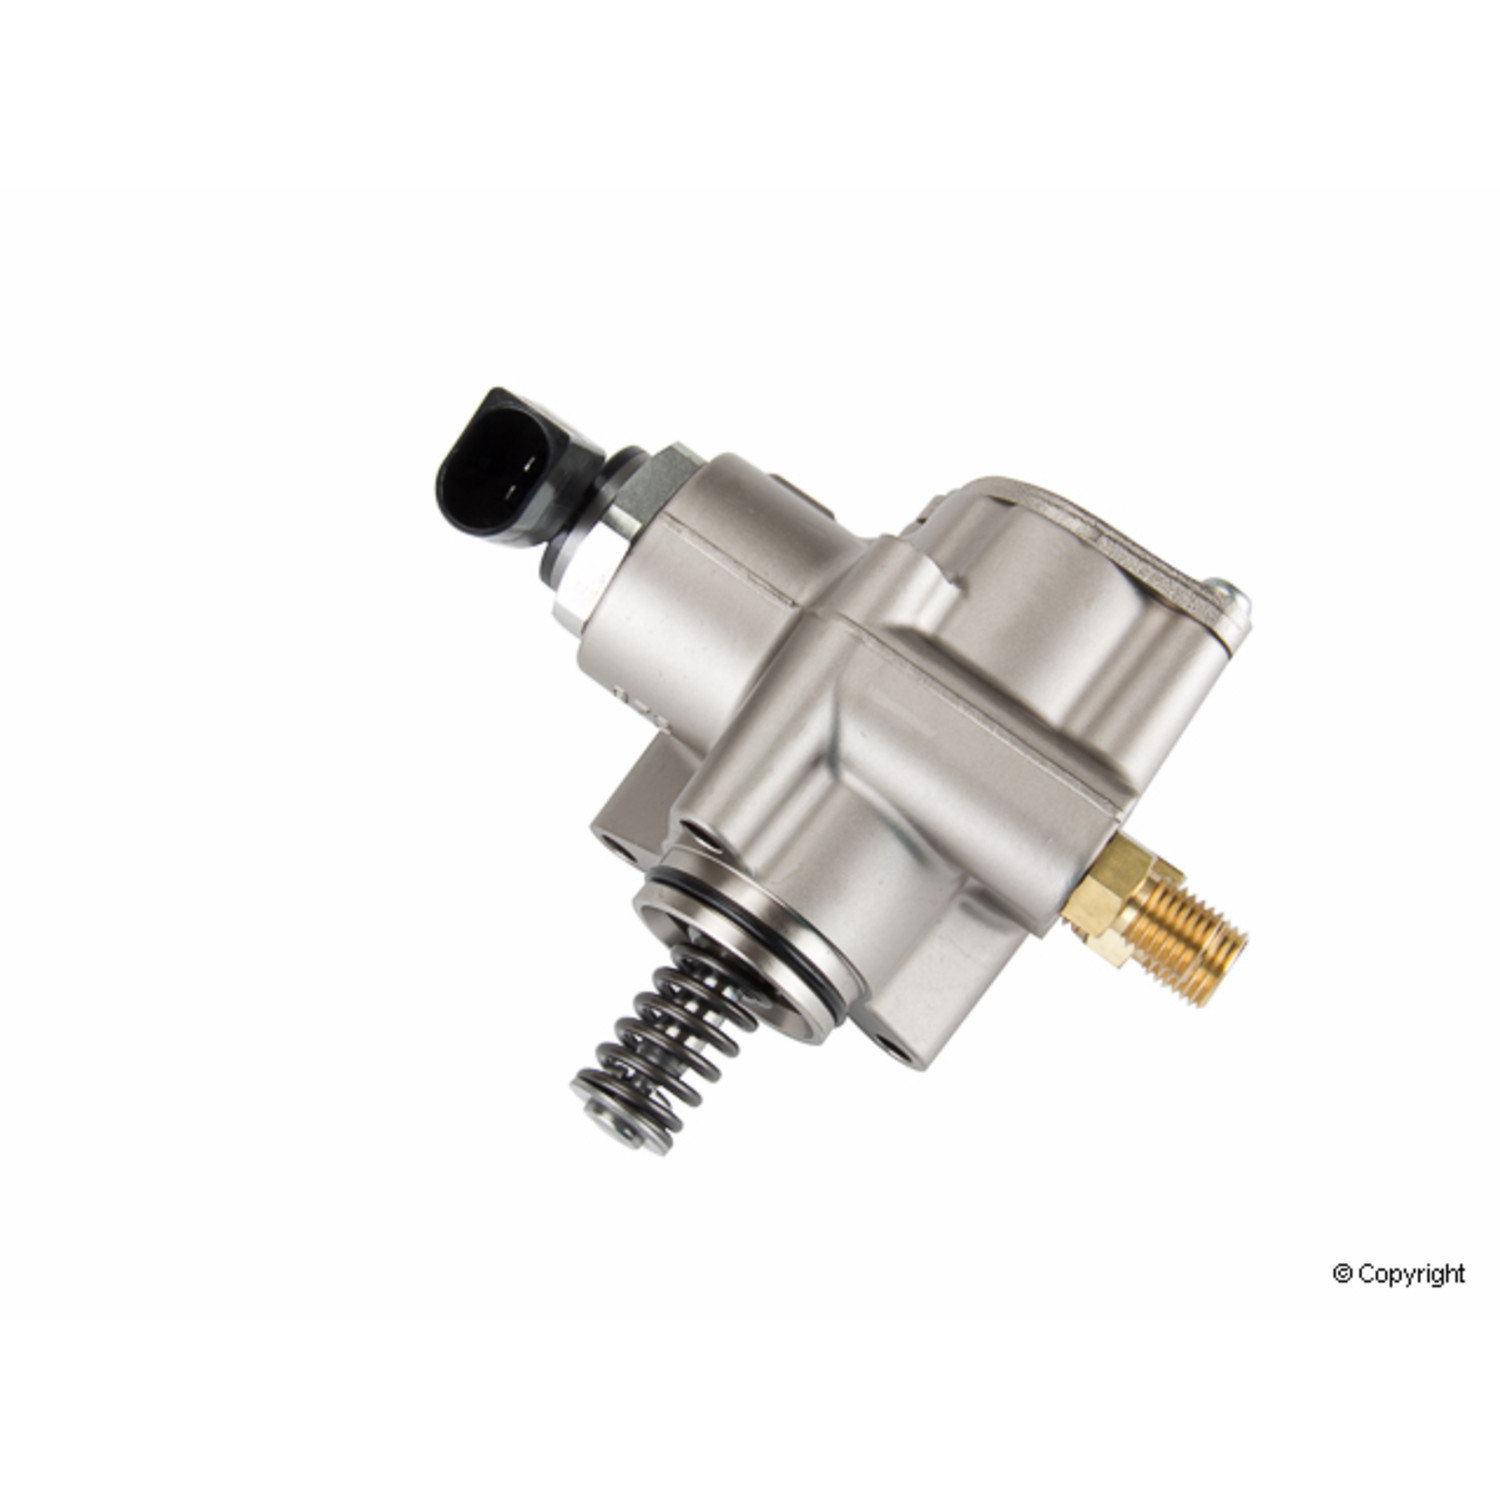 Volkswagen Direct Injection High Pressure Fuel Pump 133066